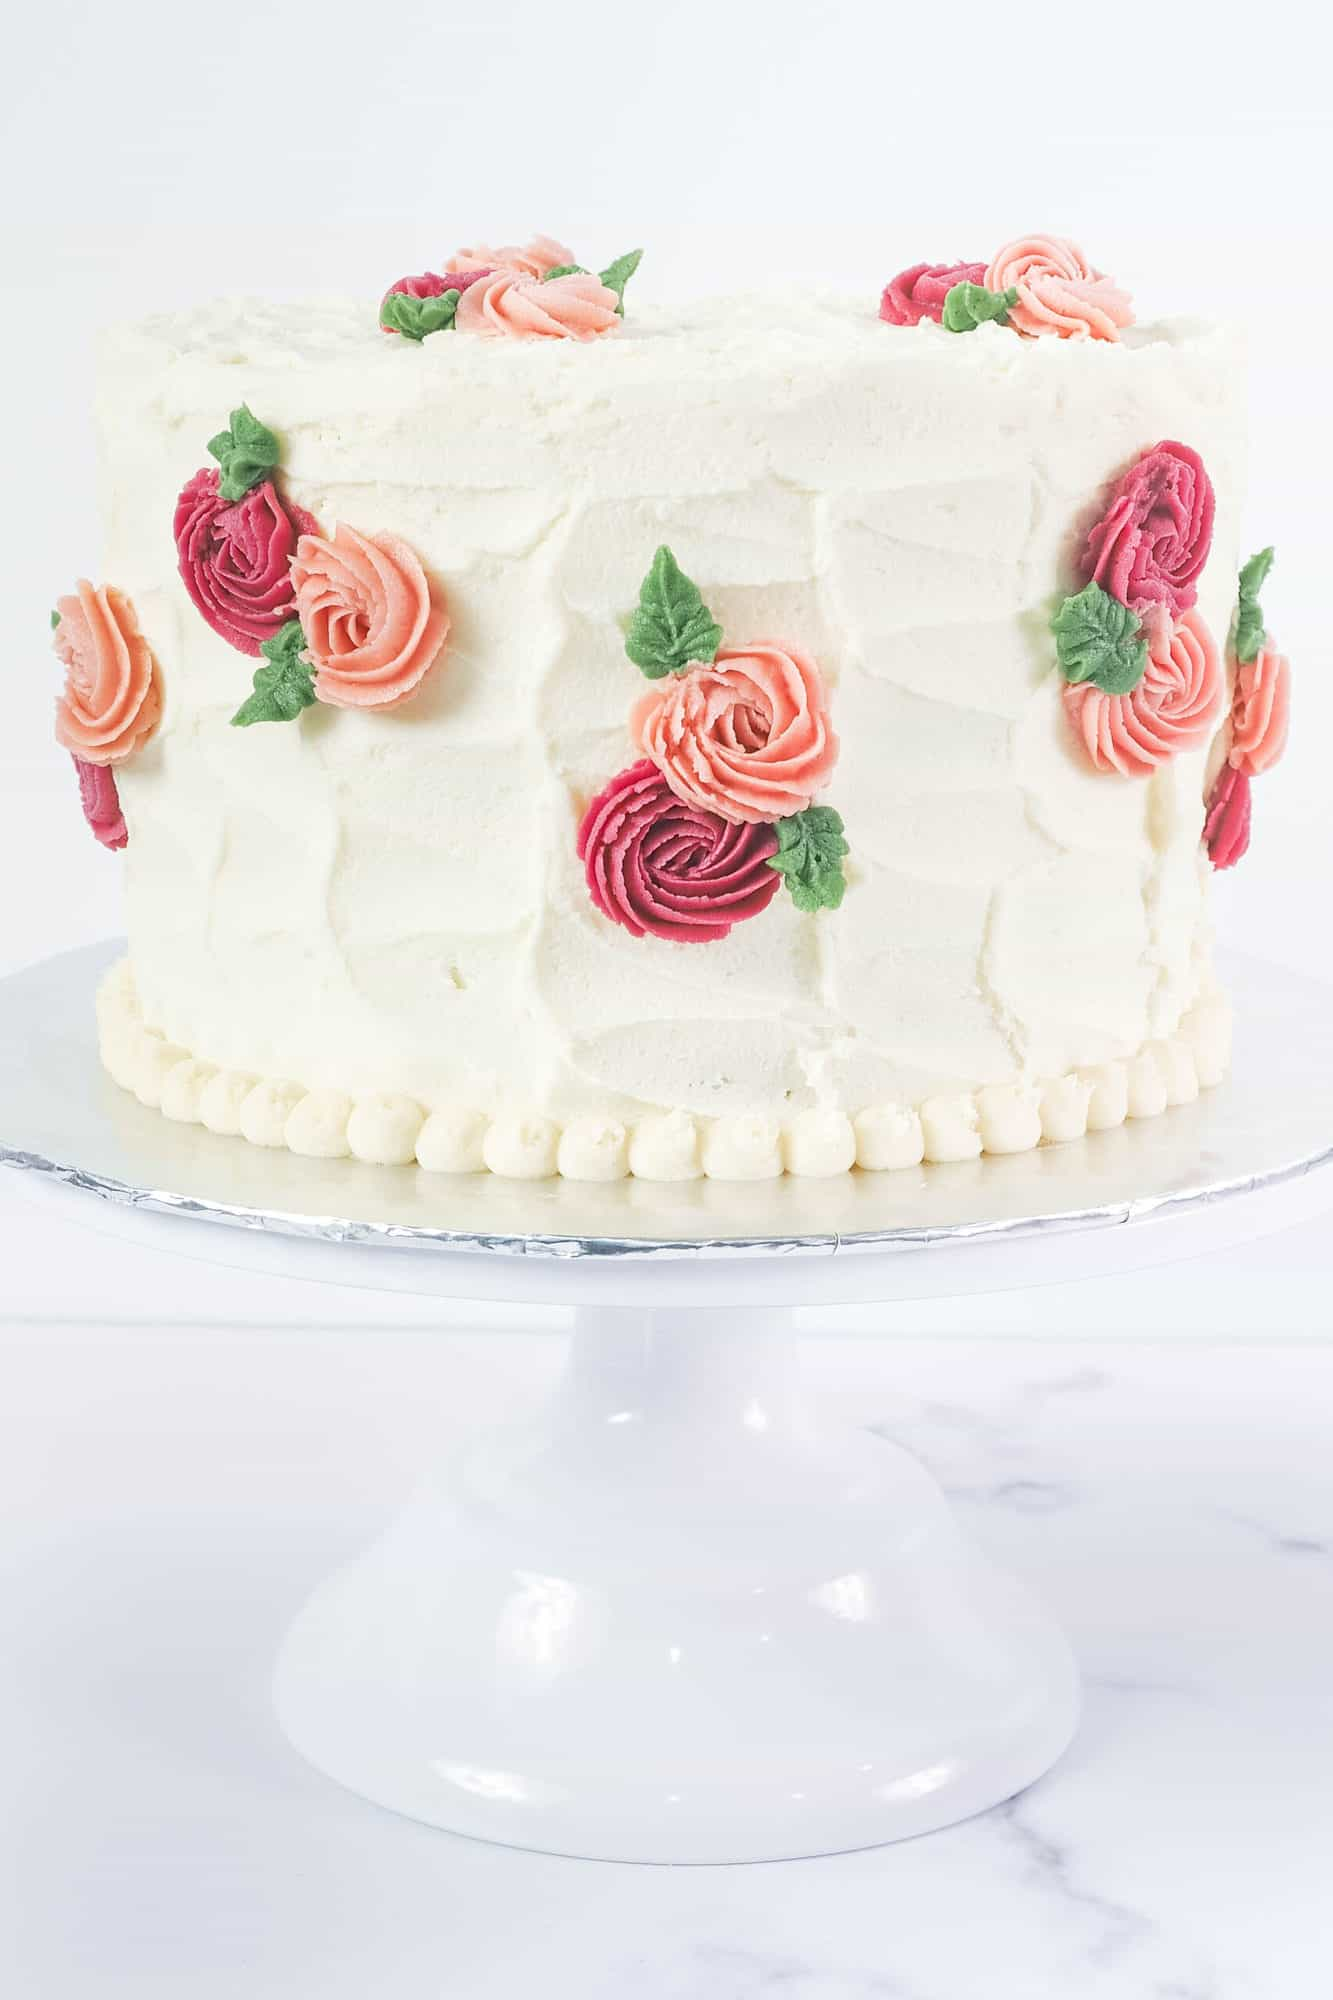 A round cake covered in white buttercream with pink and maroon rosettes and green leaves. Cake is on a white cake stand